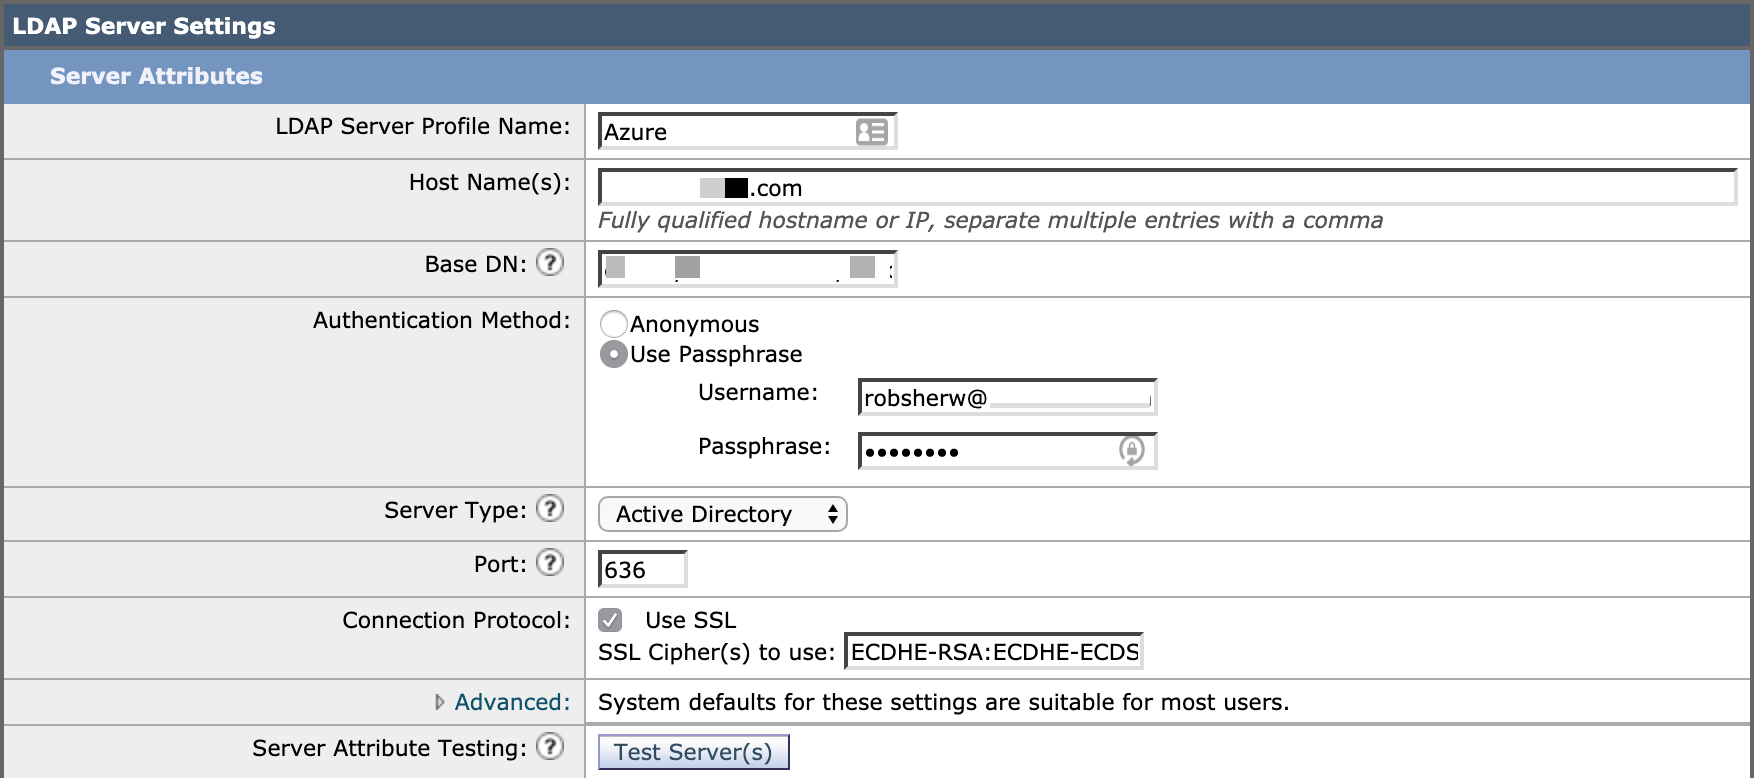 Your LDAP Server Settings (Server Profile) should look similar to shown here.